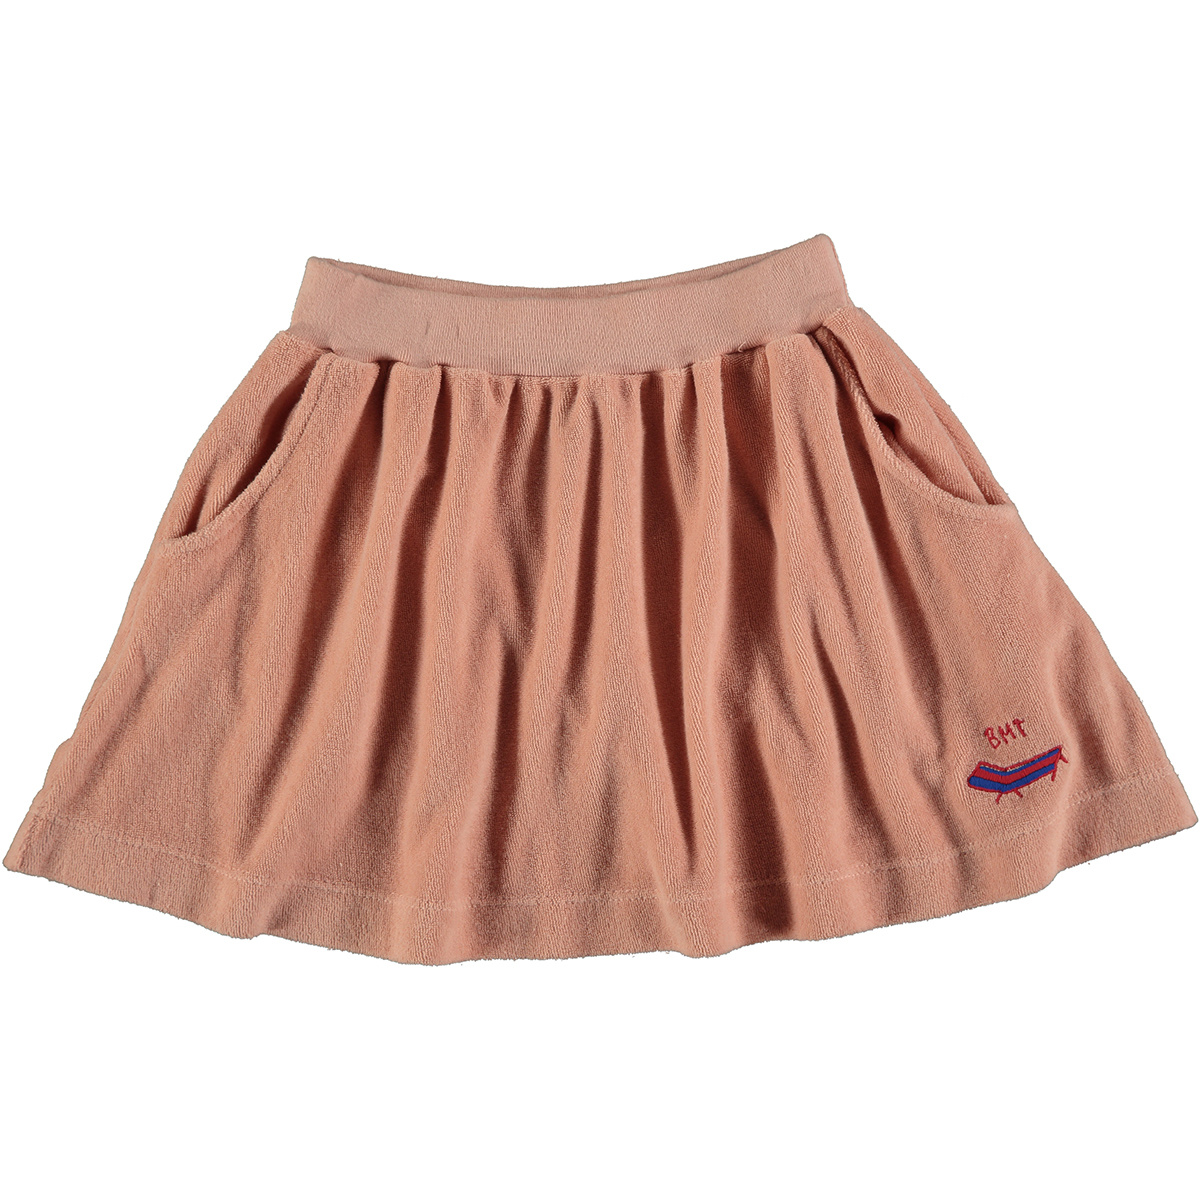 Skirt baby Sunbed - Dusty Pink-1